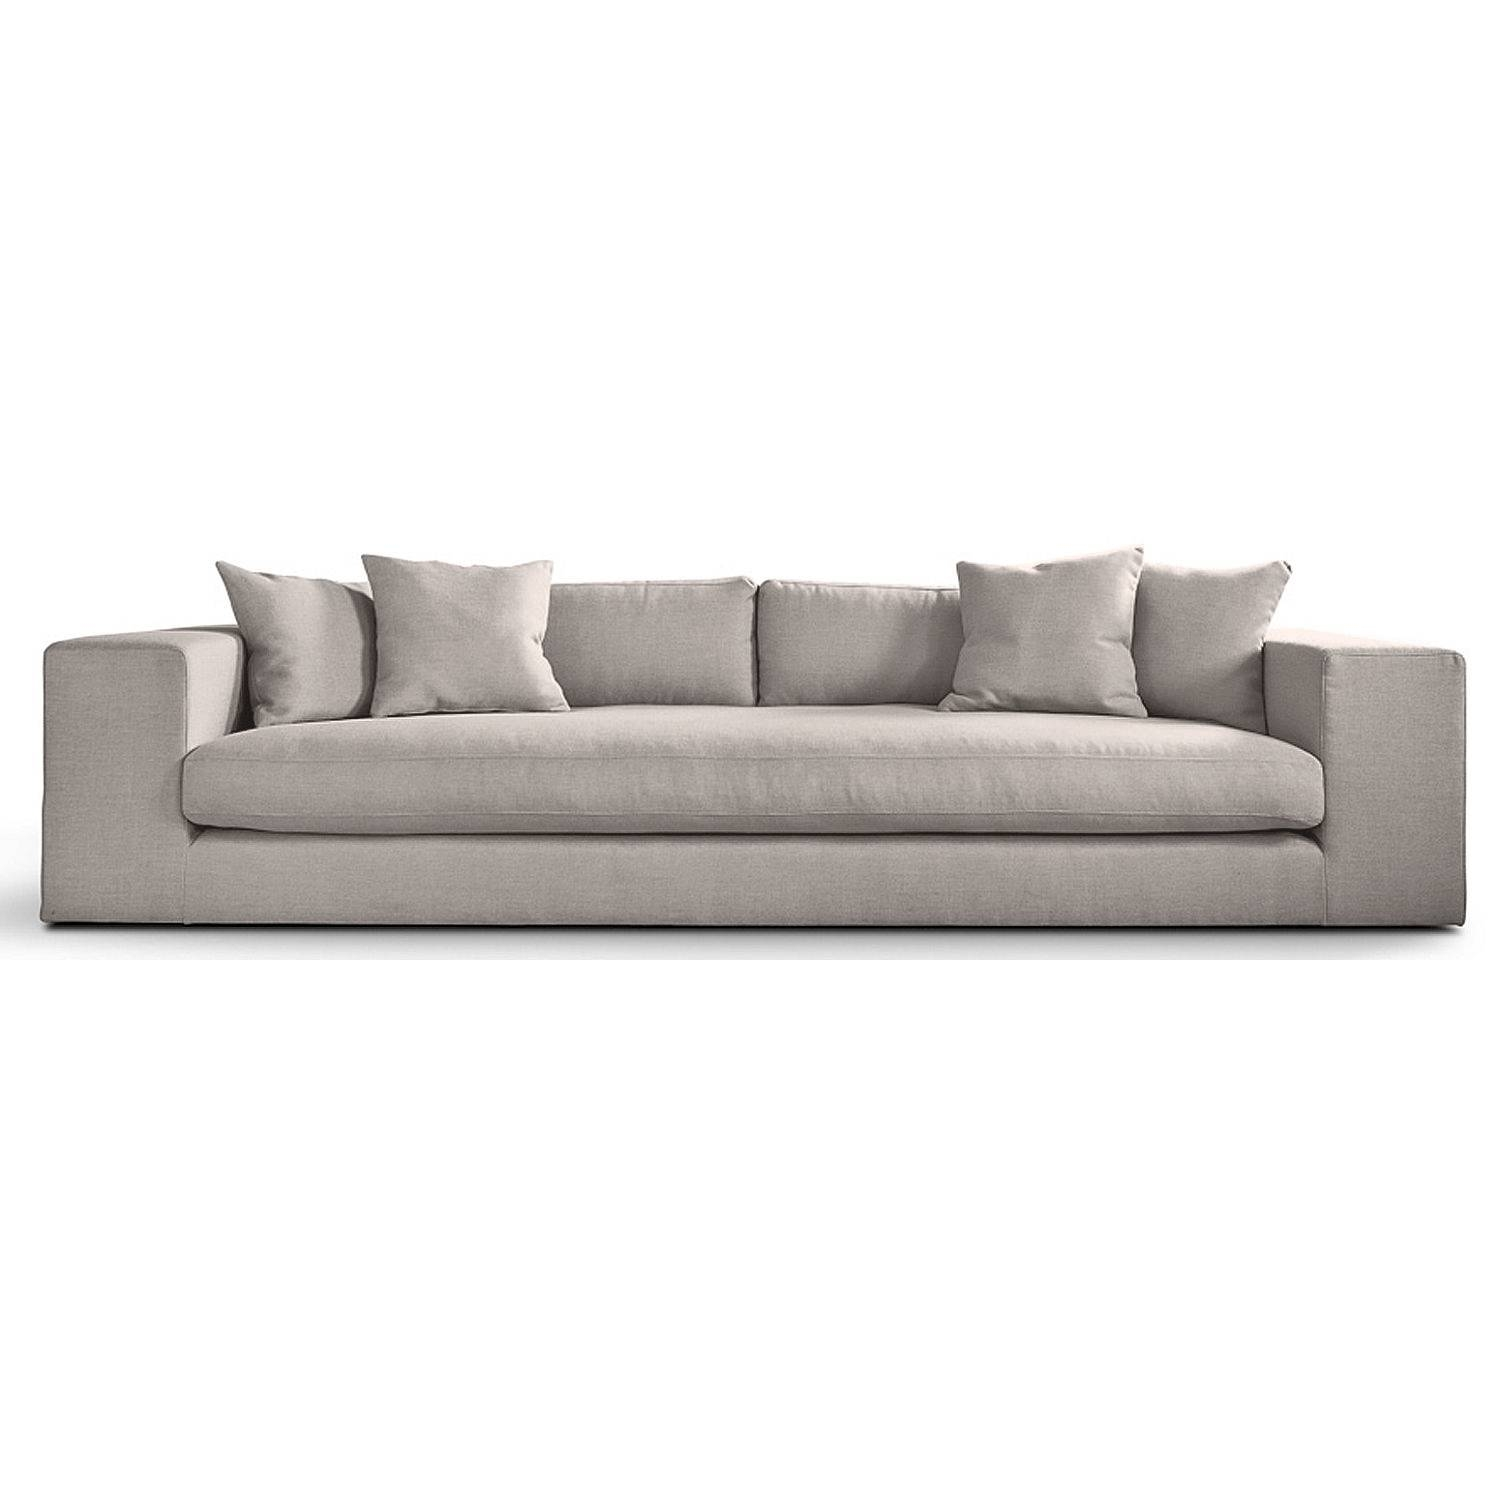 4 Seater Sofa Imprimatur 4 Seater Sofa Maxalto Milia - Thesofa regarding Four Seat Sofas (Image 1 of 30)